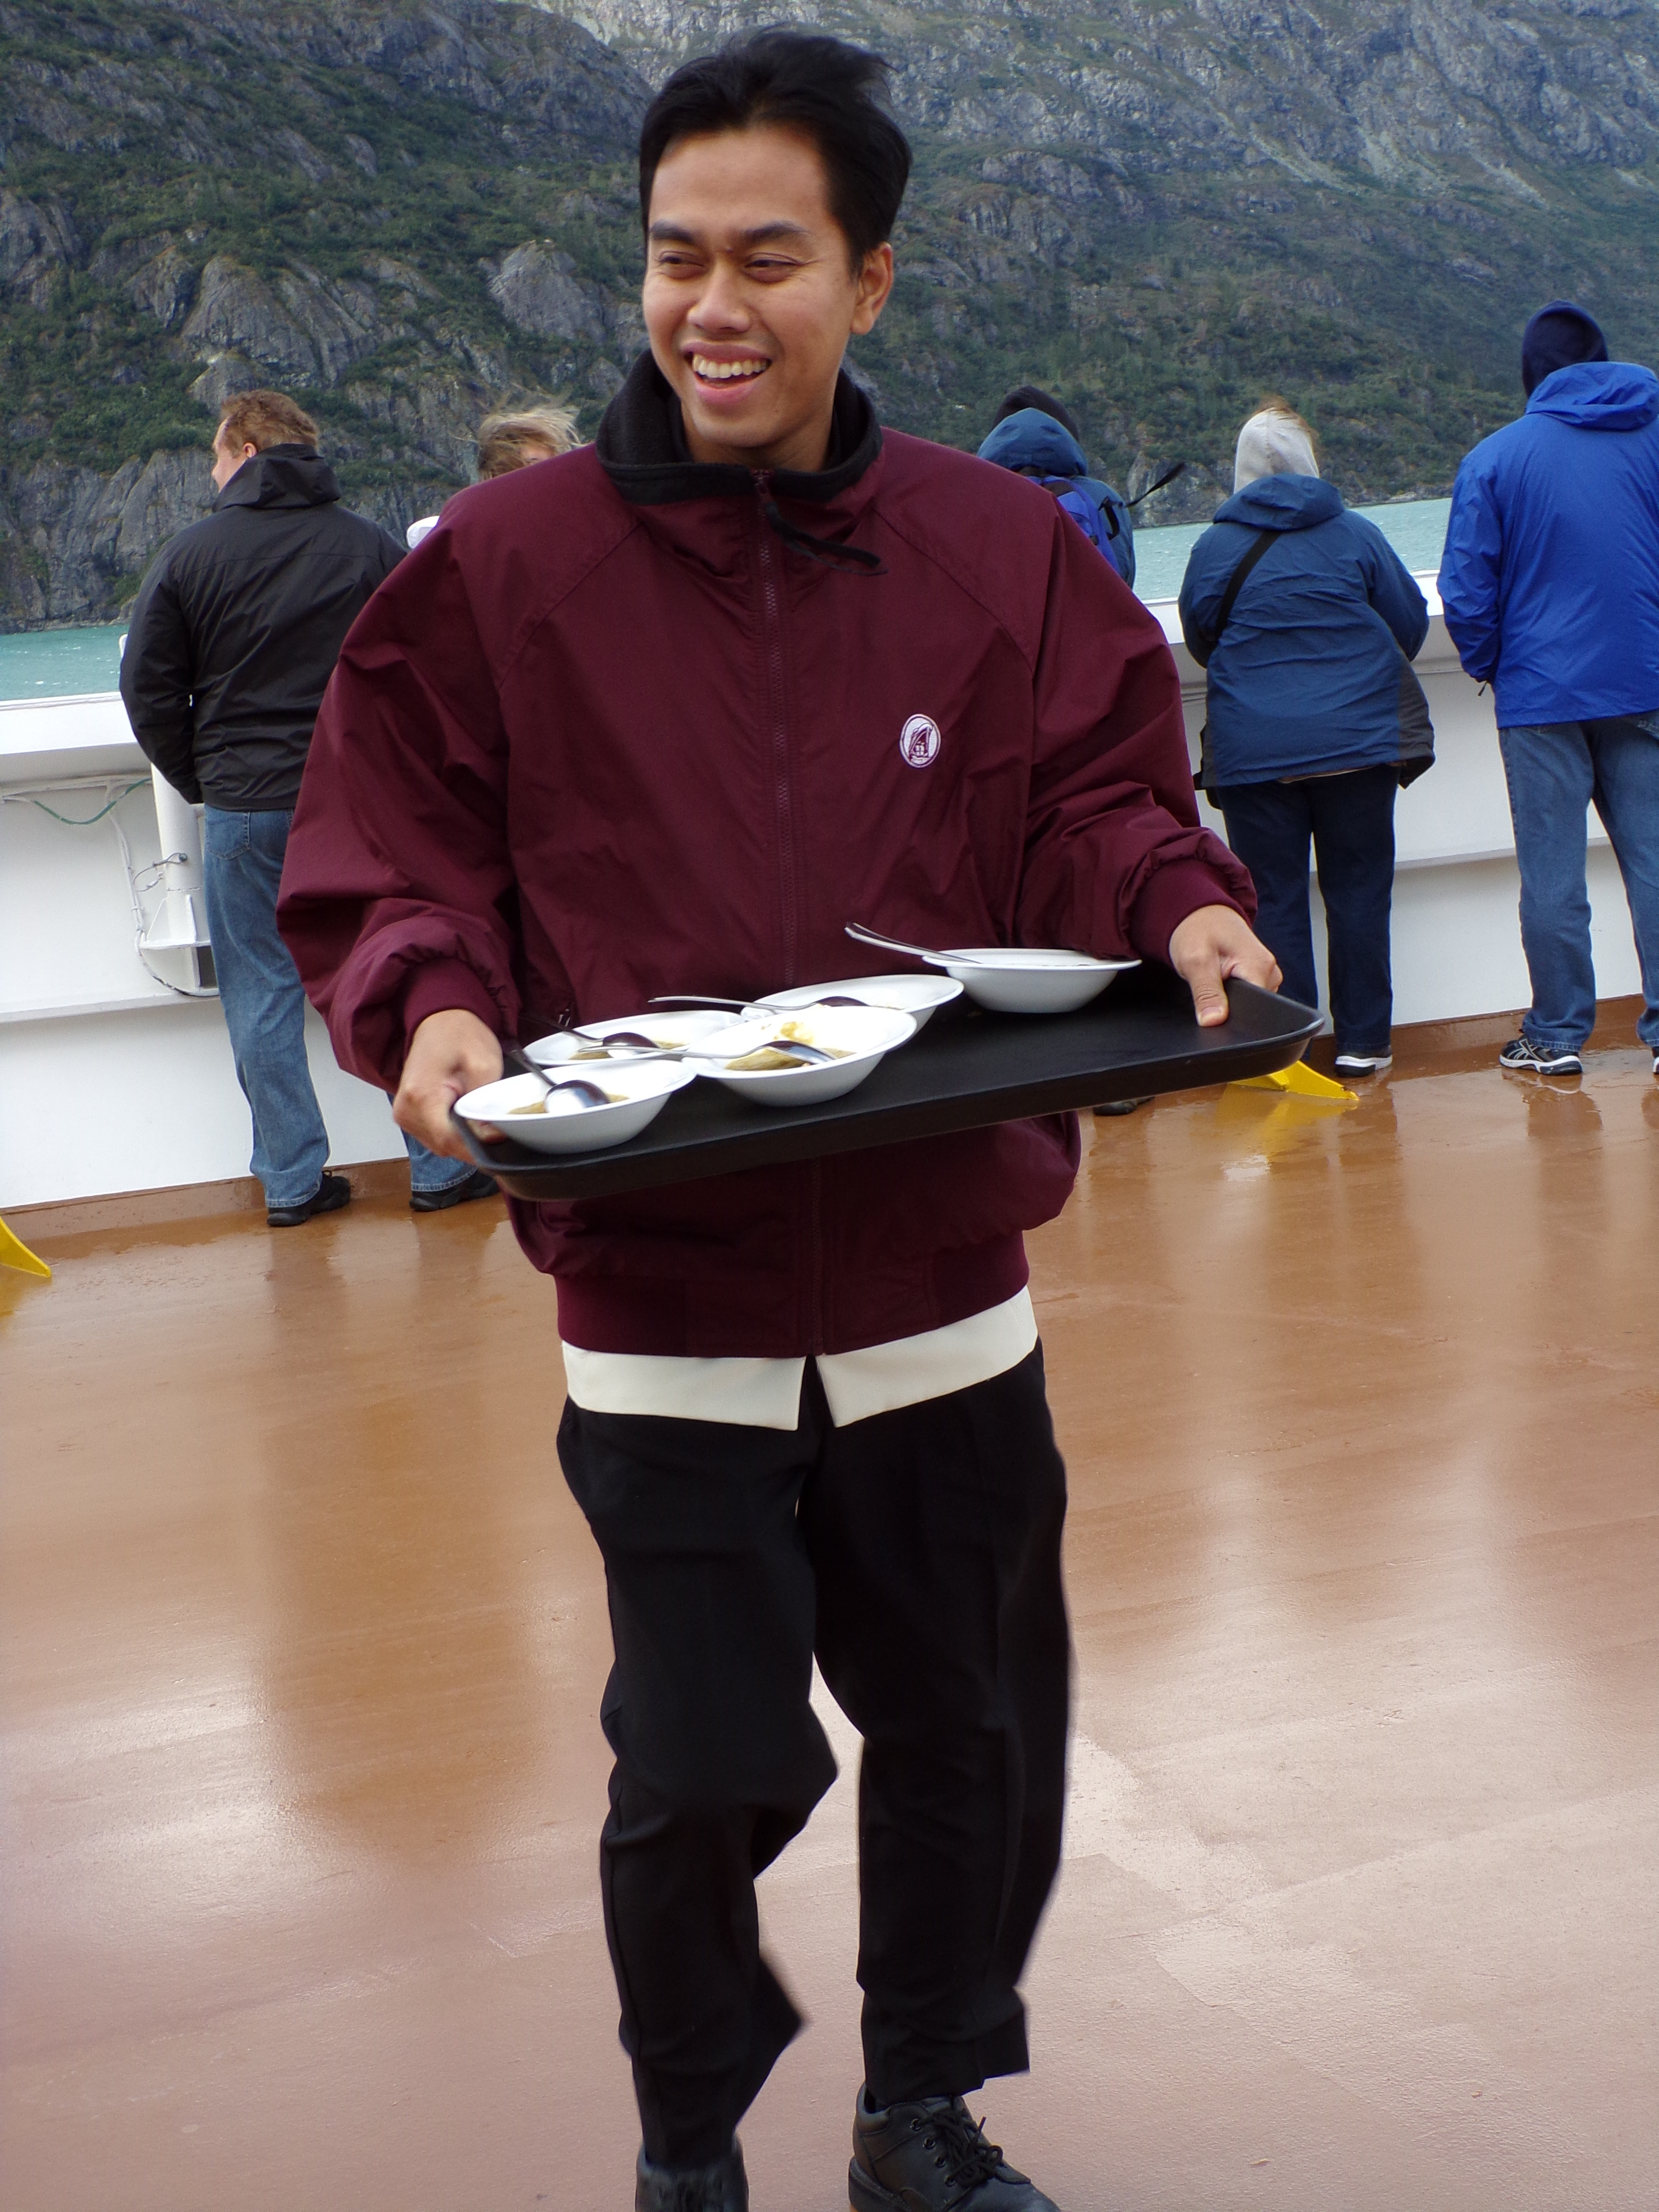 The steward holds on tight to the tray of soup.